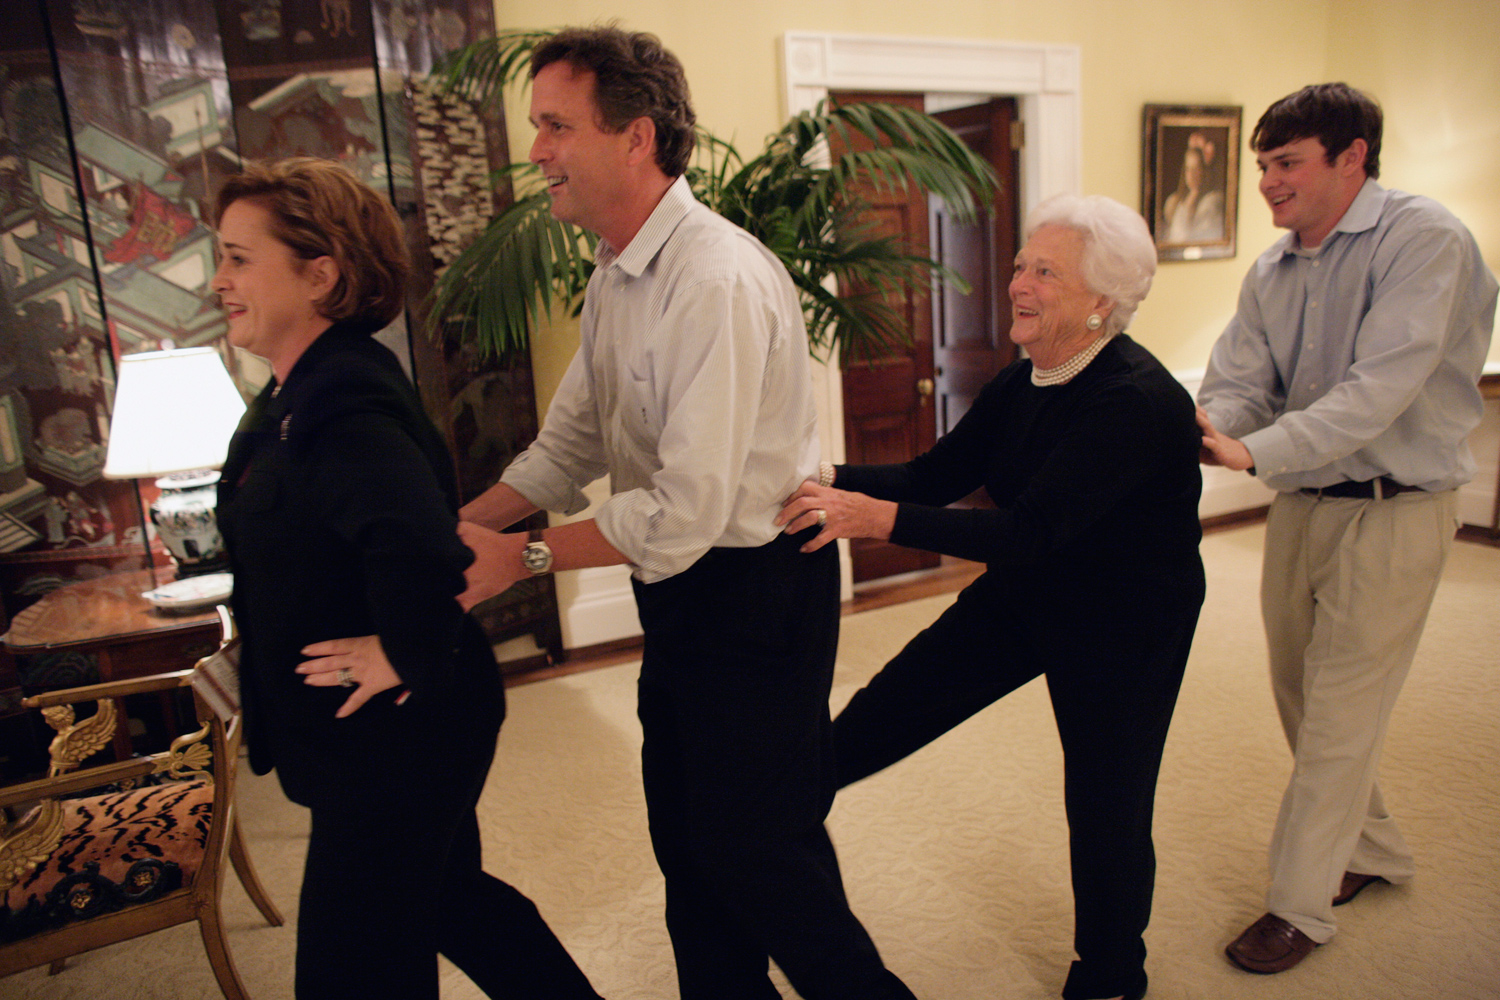 Nov. 3, 2004. Doro Koch leads Marvin Bush, Barbara Bush and Sam LeBlond in a conga line during election night in the Private Residence of the White House.